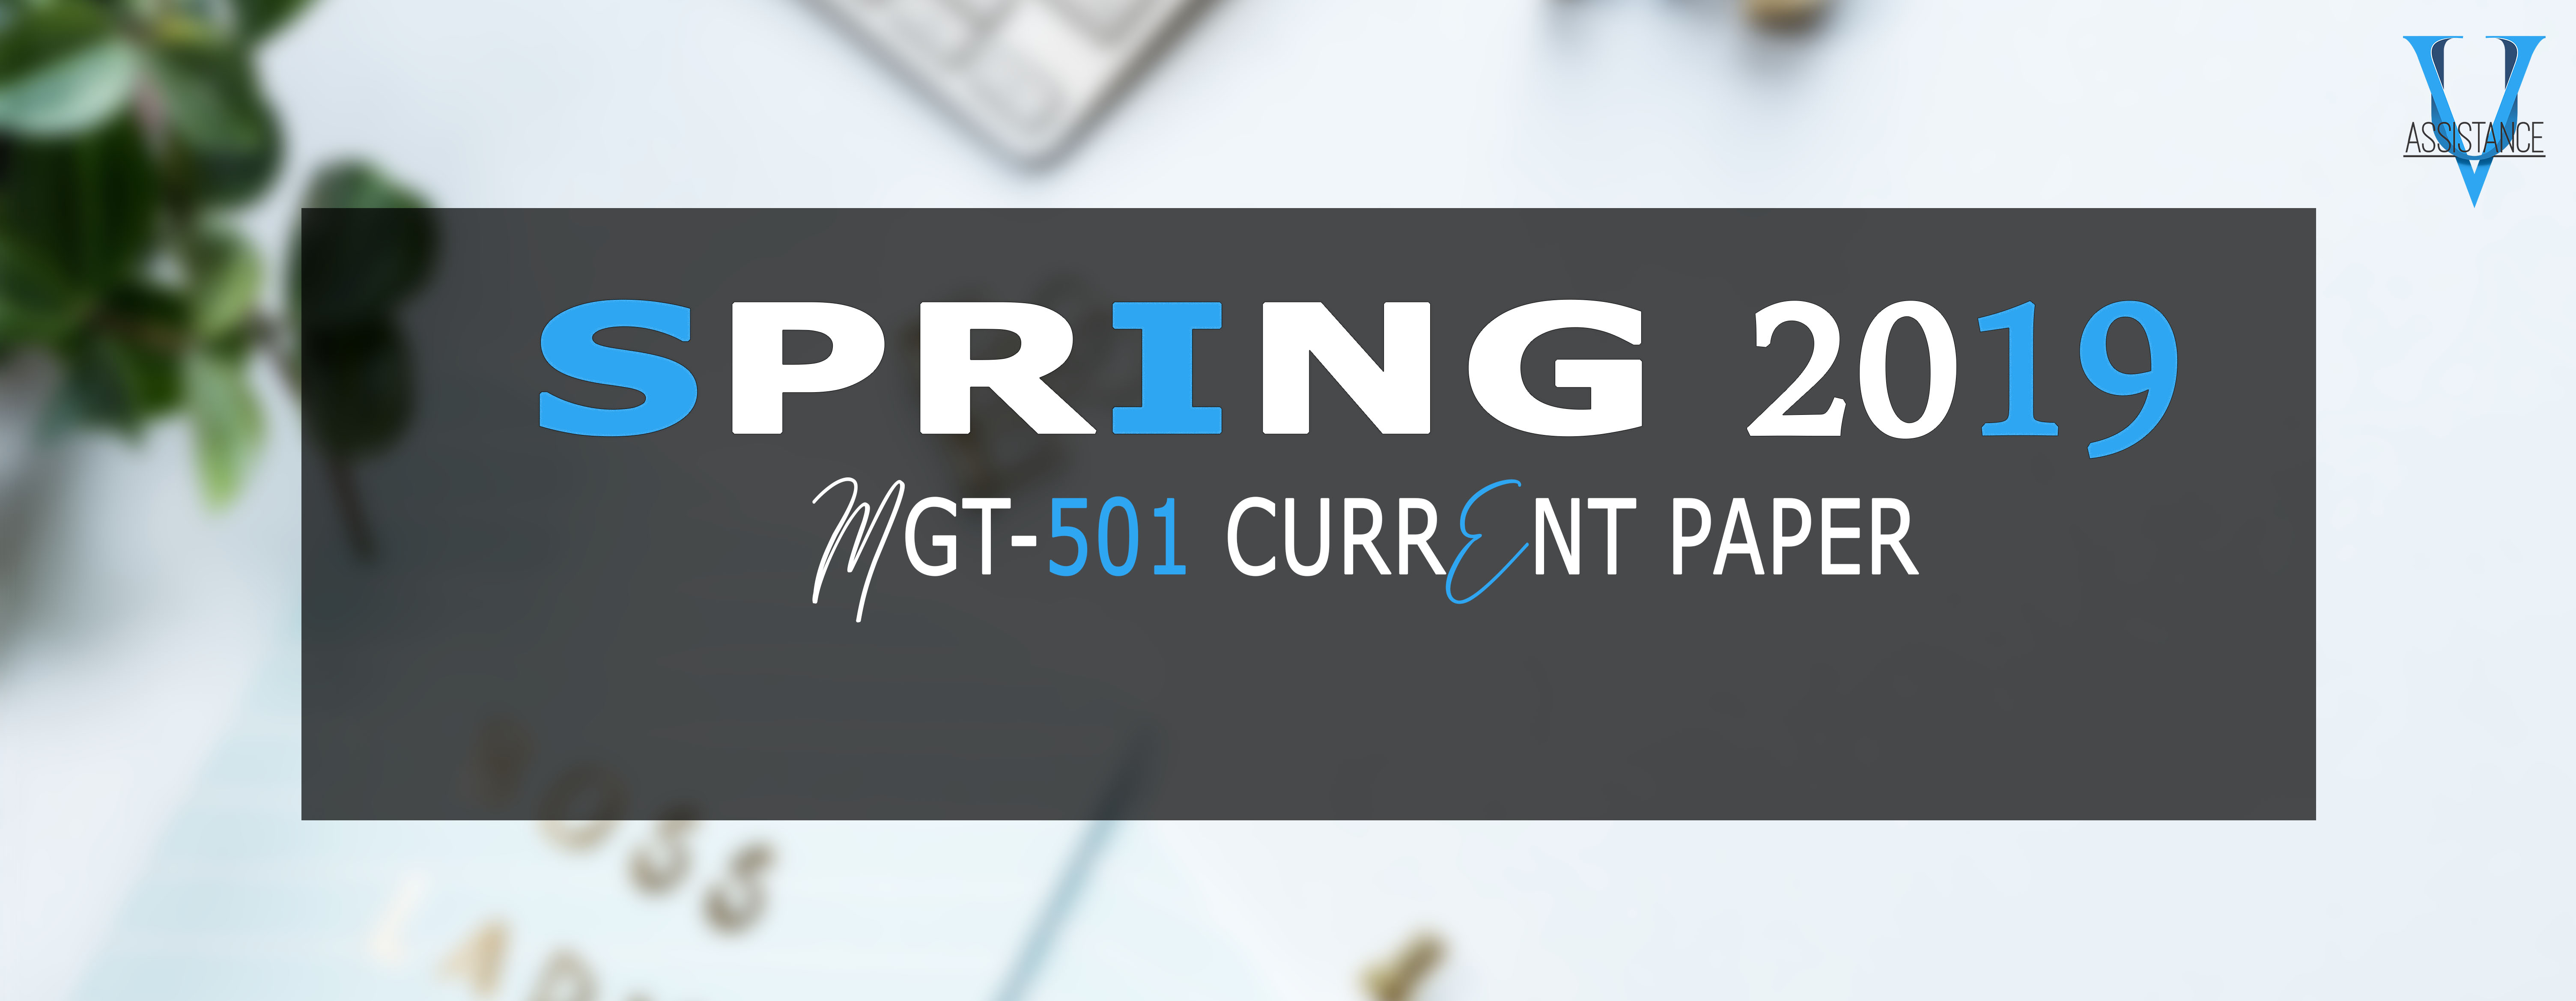 MGT501 Current Paper Spring 2019